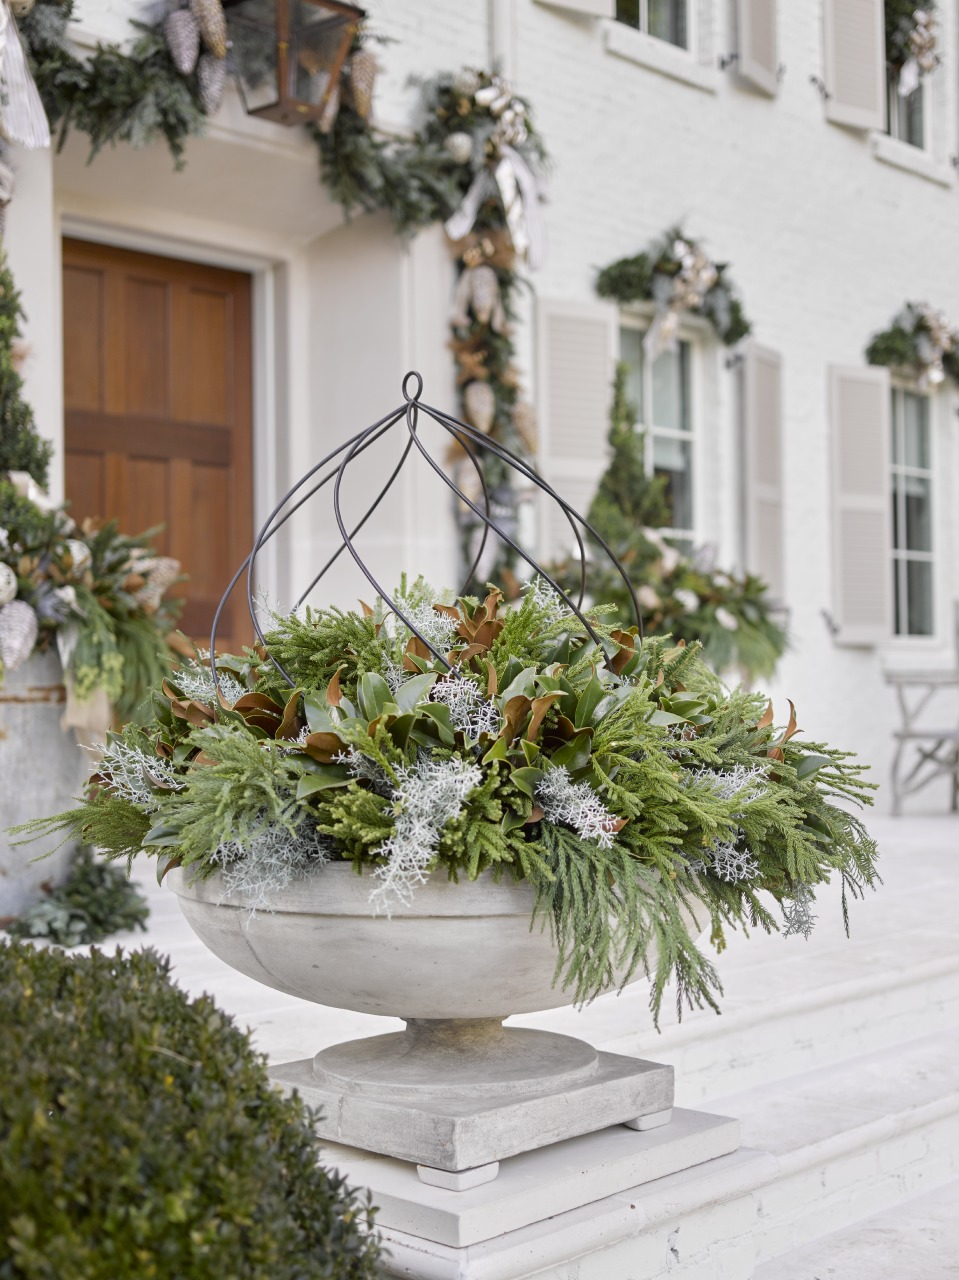 Outdoor Holiday Decorating: Home for the Holidays Showcase